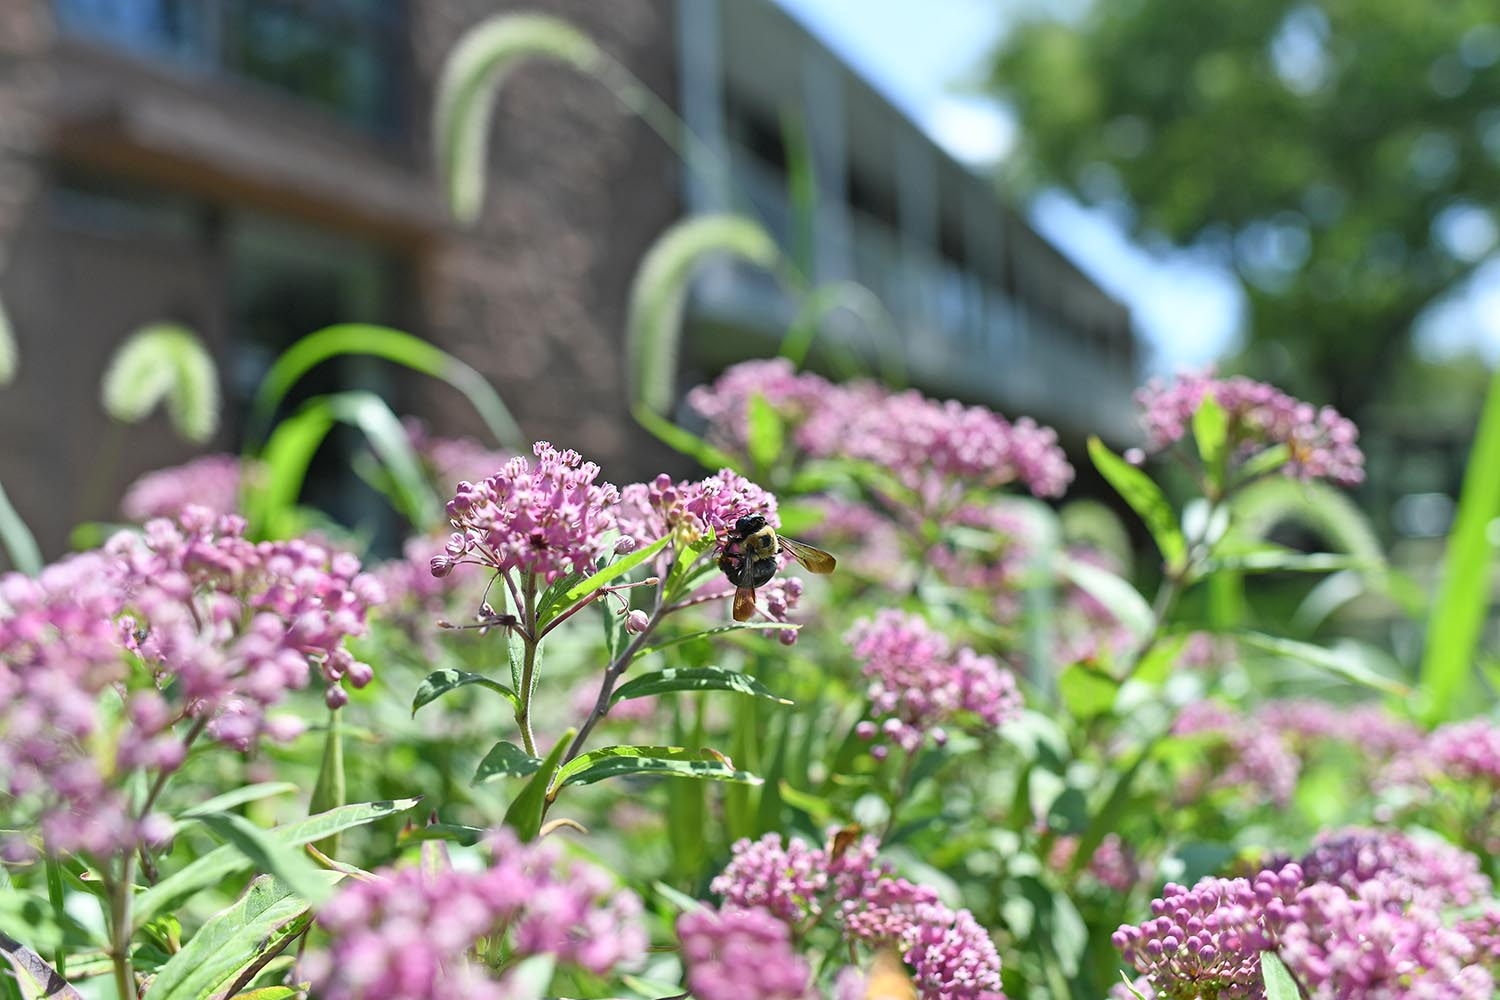 Swamp milkweed grows in abundance near West College.